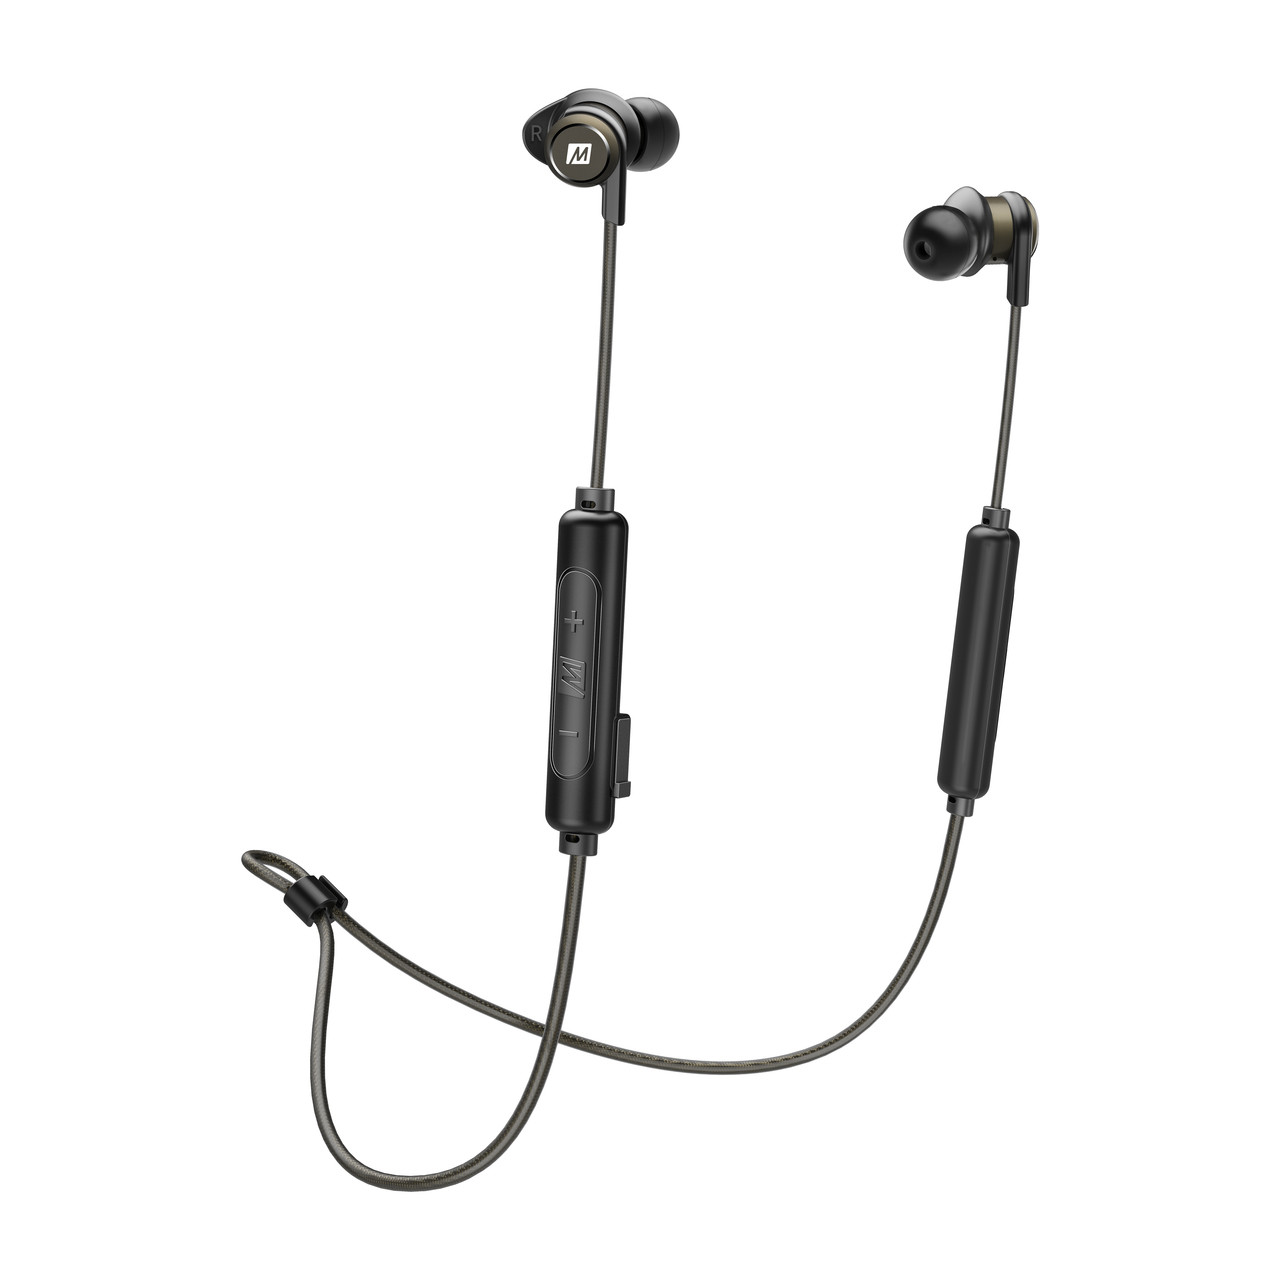 3c770a78dbe MEE audio X5 Wireless In-Ear Stereo Headset (2019 version)